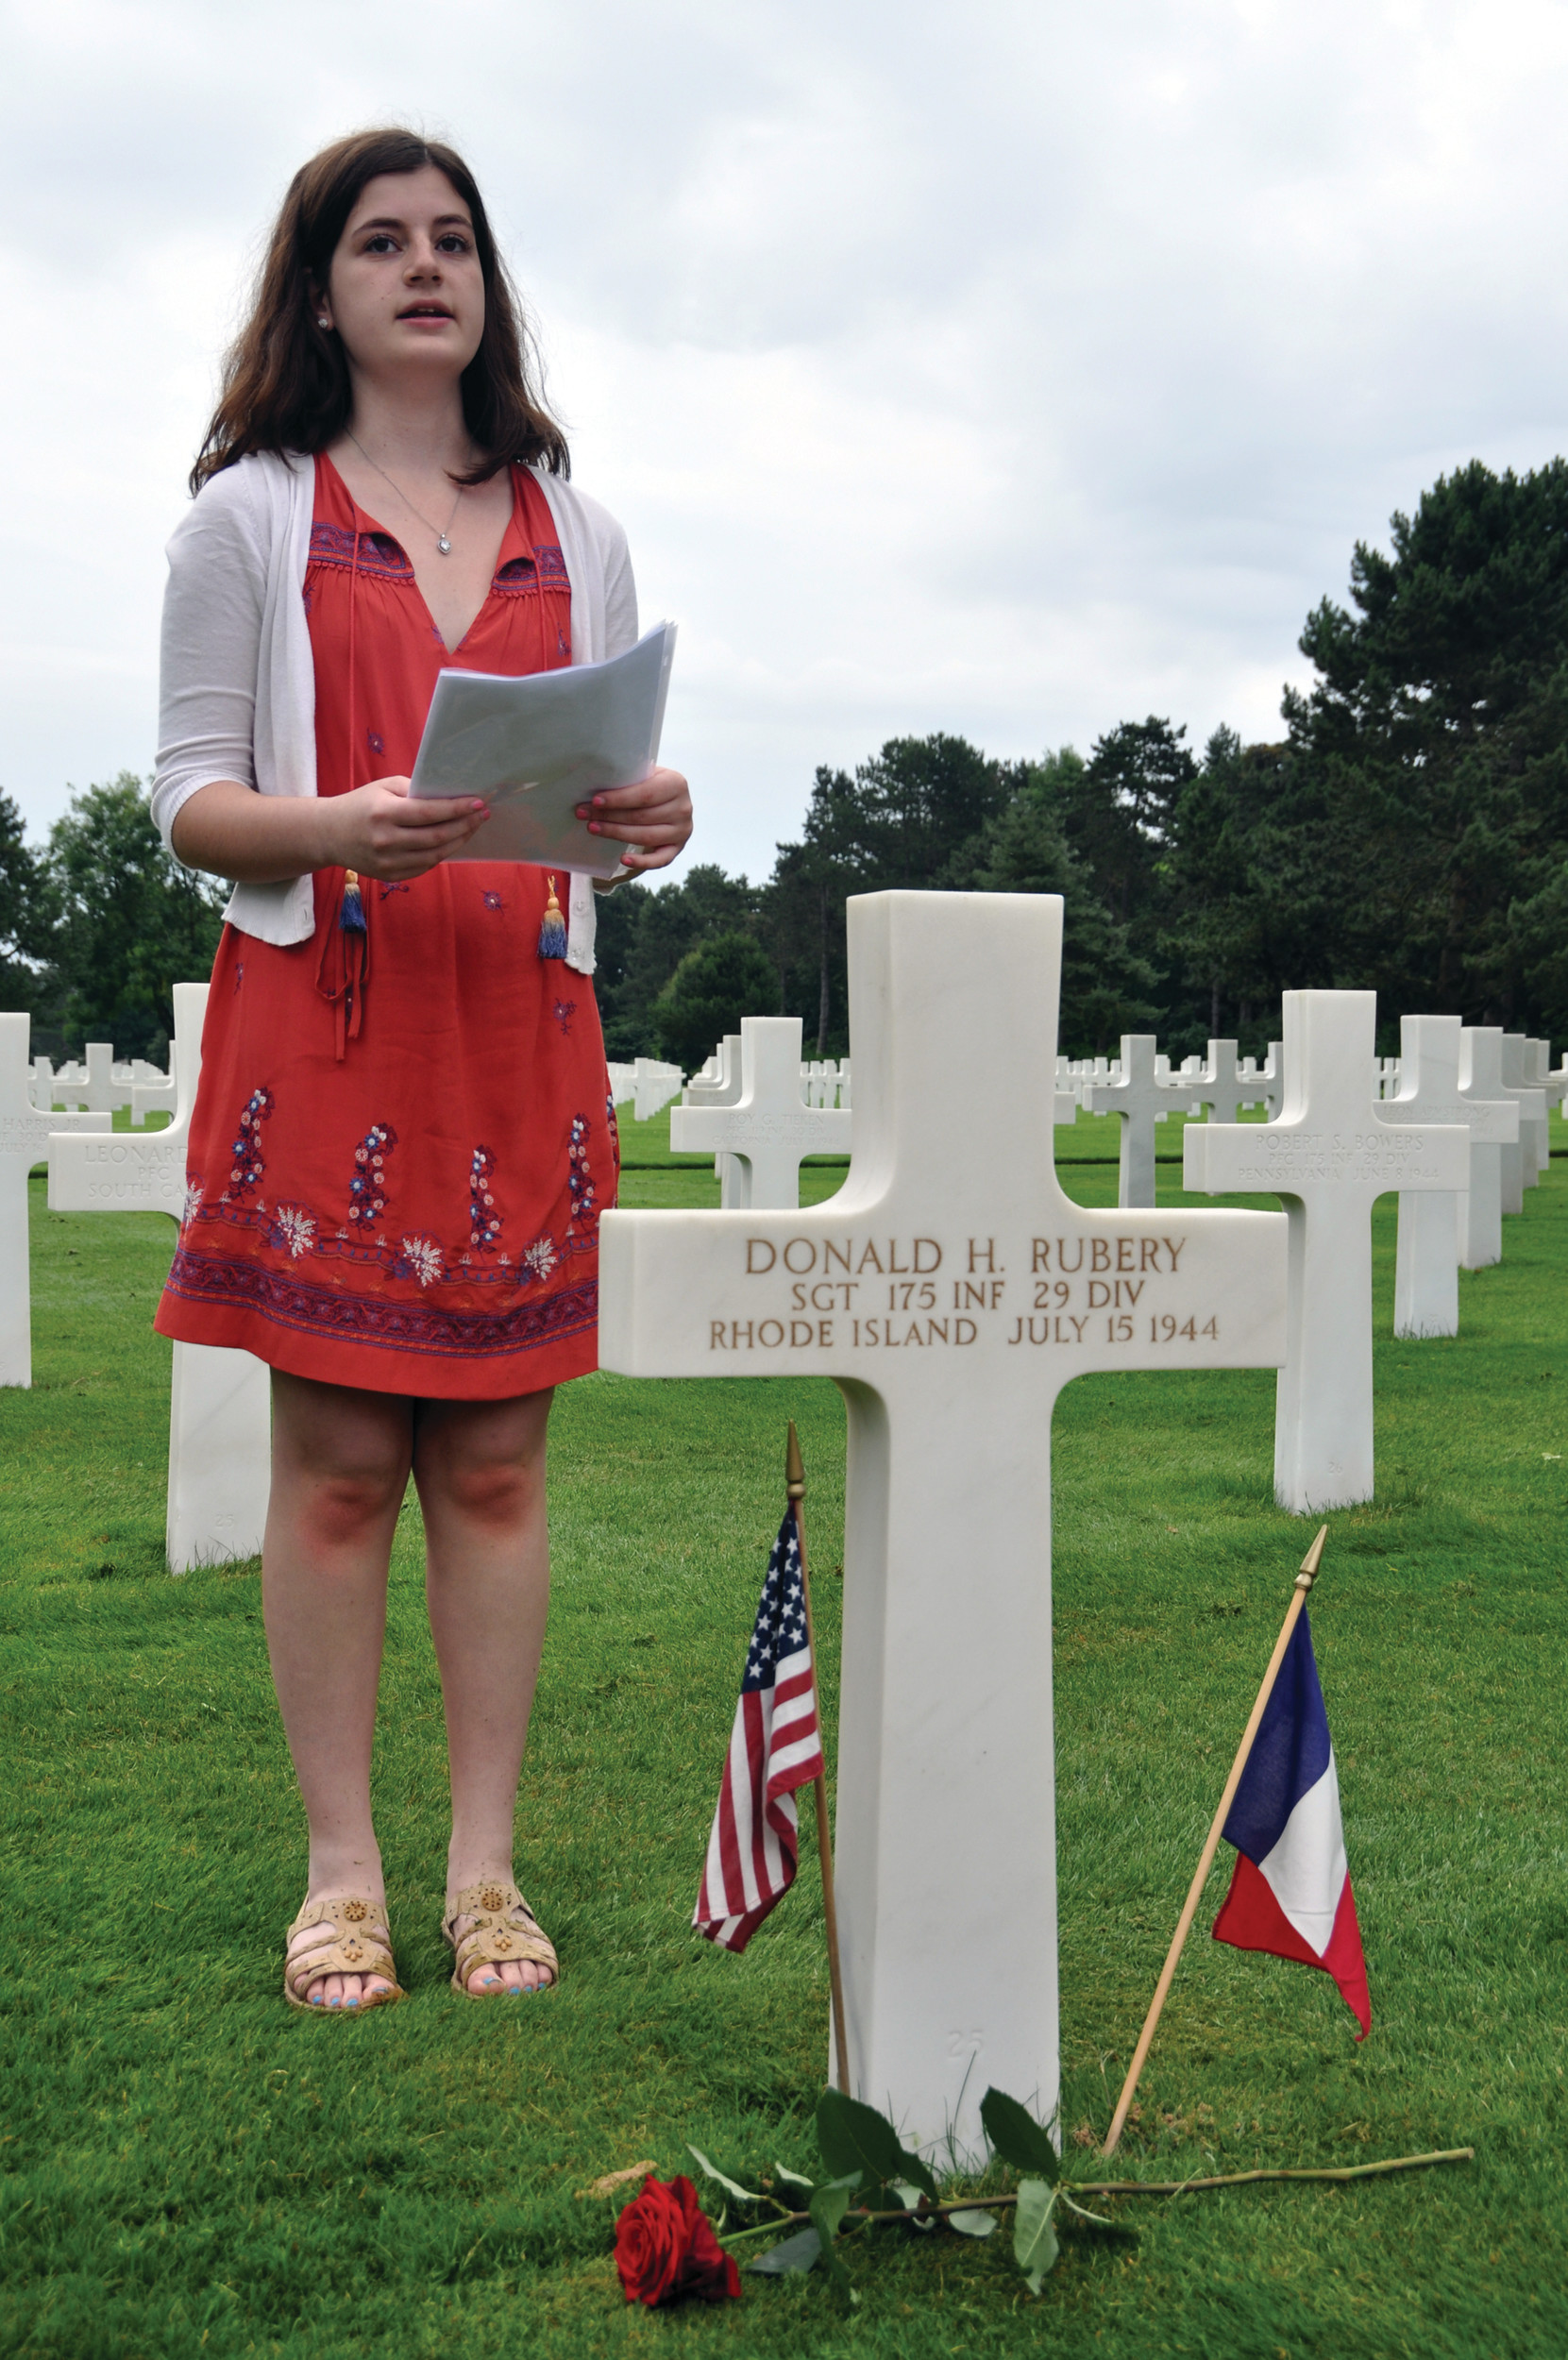 IN MEMORIAM: Rebecca Carcieri delivers a eulogy at the gravesite of Sergeant Donald H. Rubery on the grounds of the American Cemetery in Normandy, France.